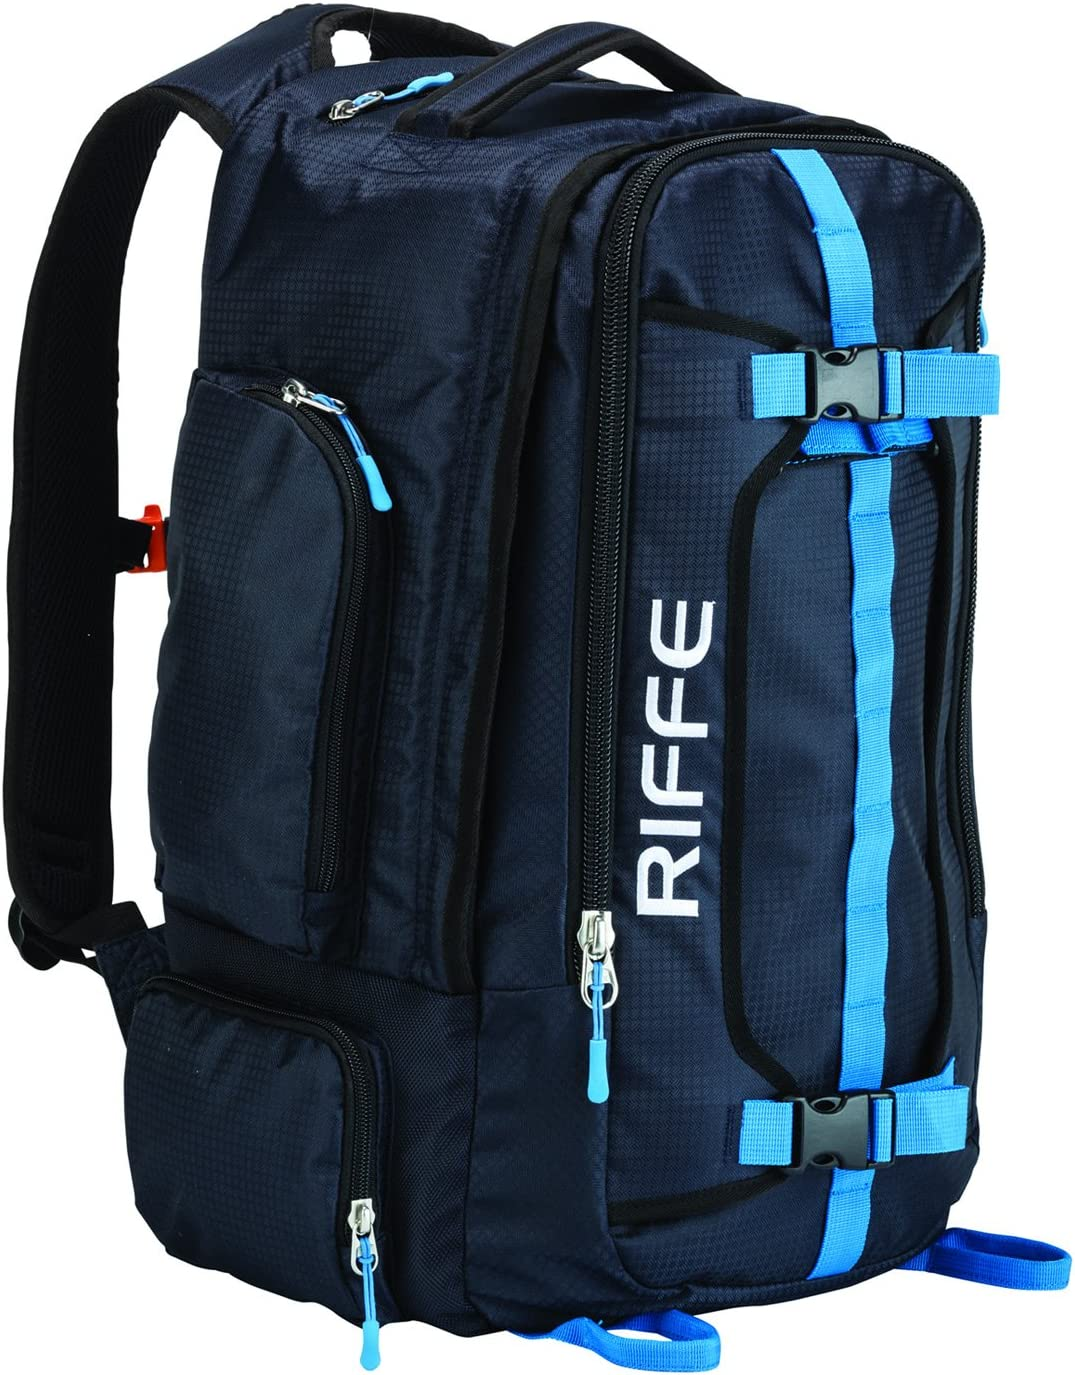 Riffe Drifter Utility Pack Backpack for Freediving and Spearfishing